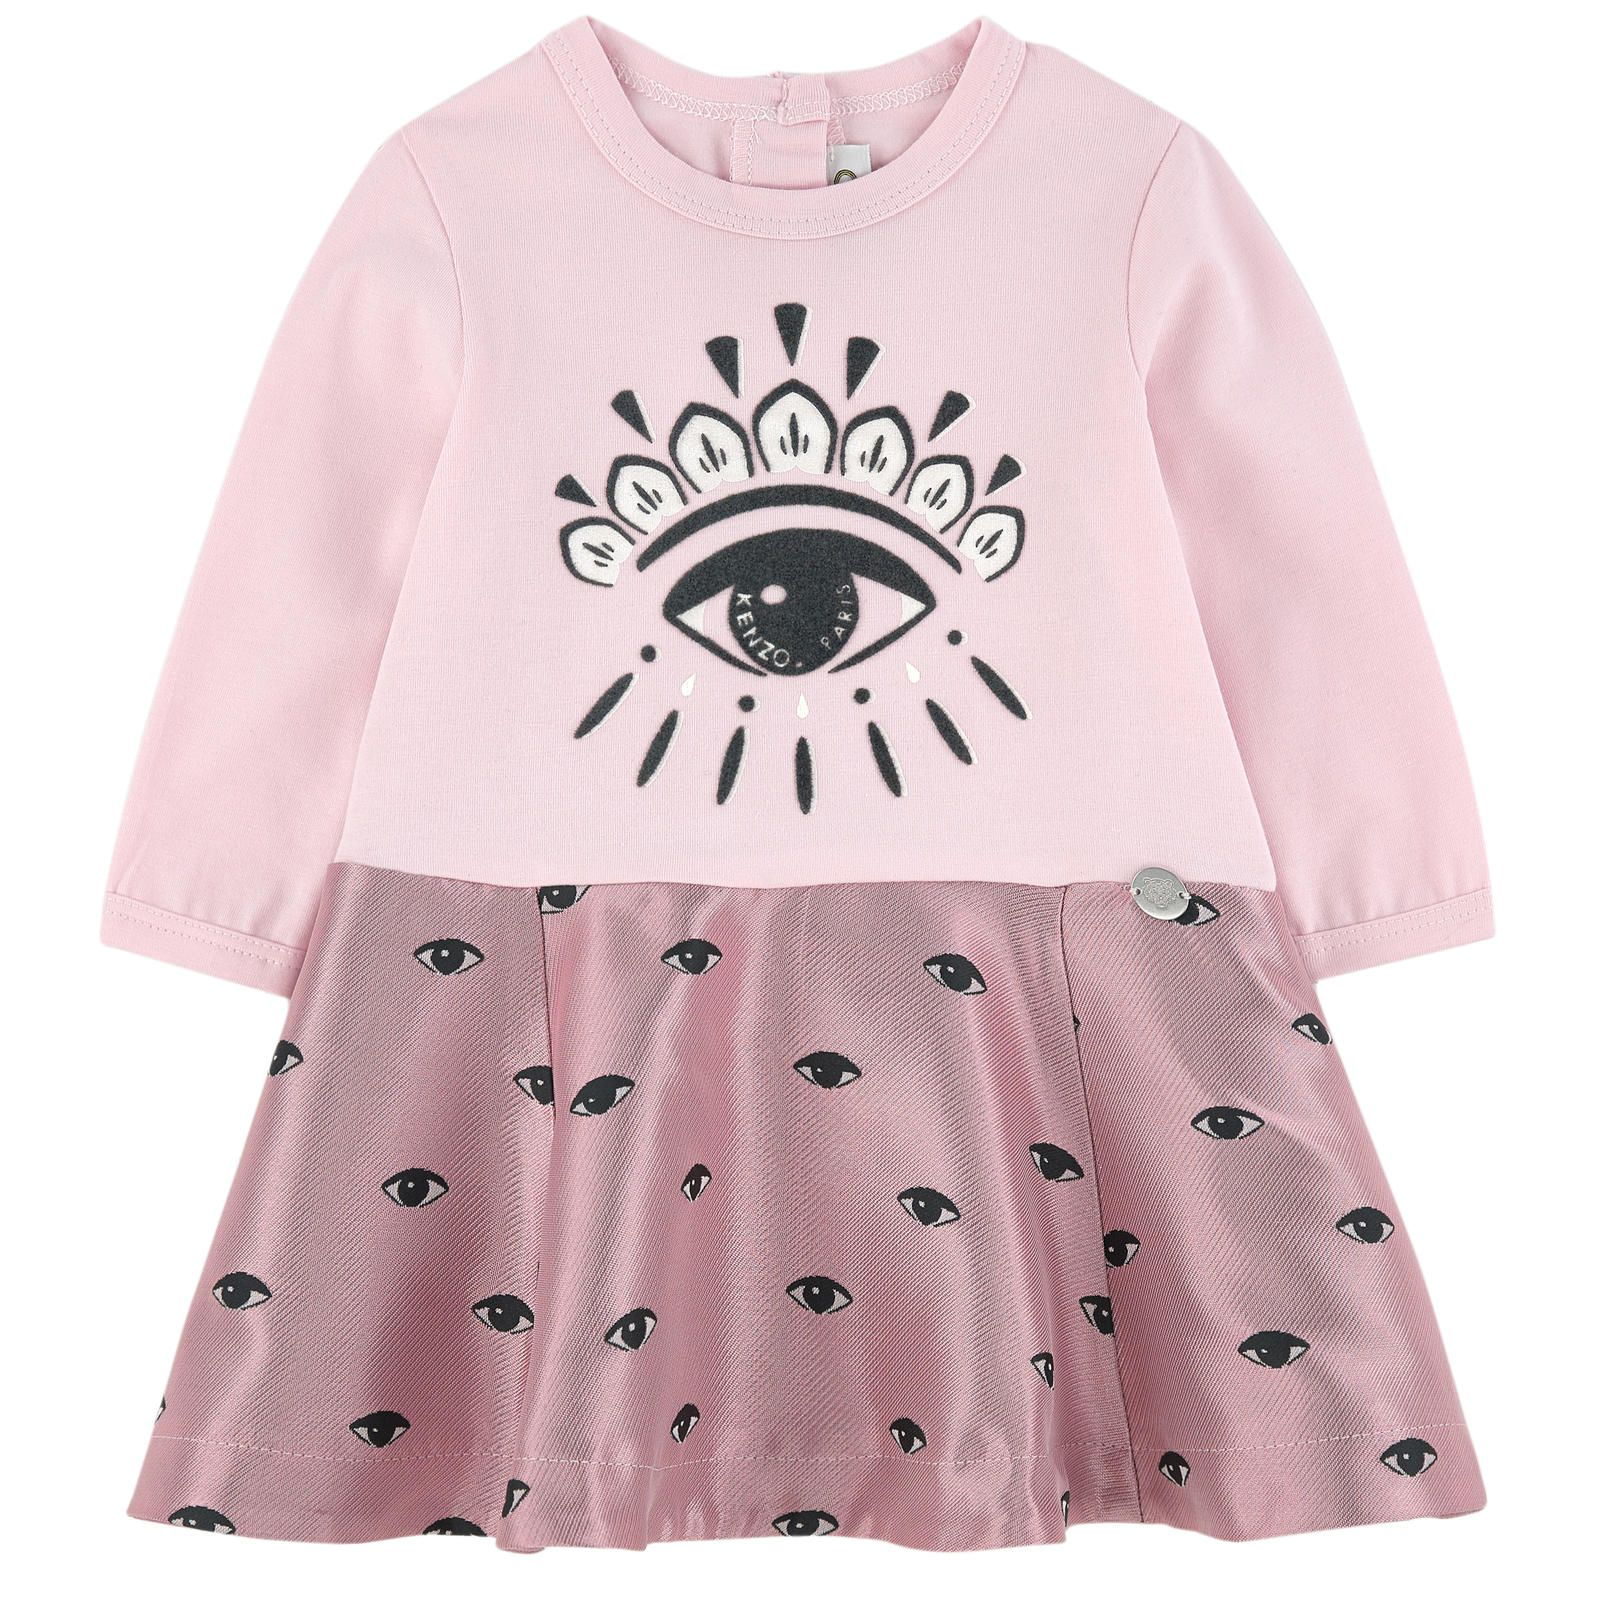 Eye bimaterial dress